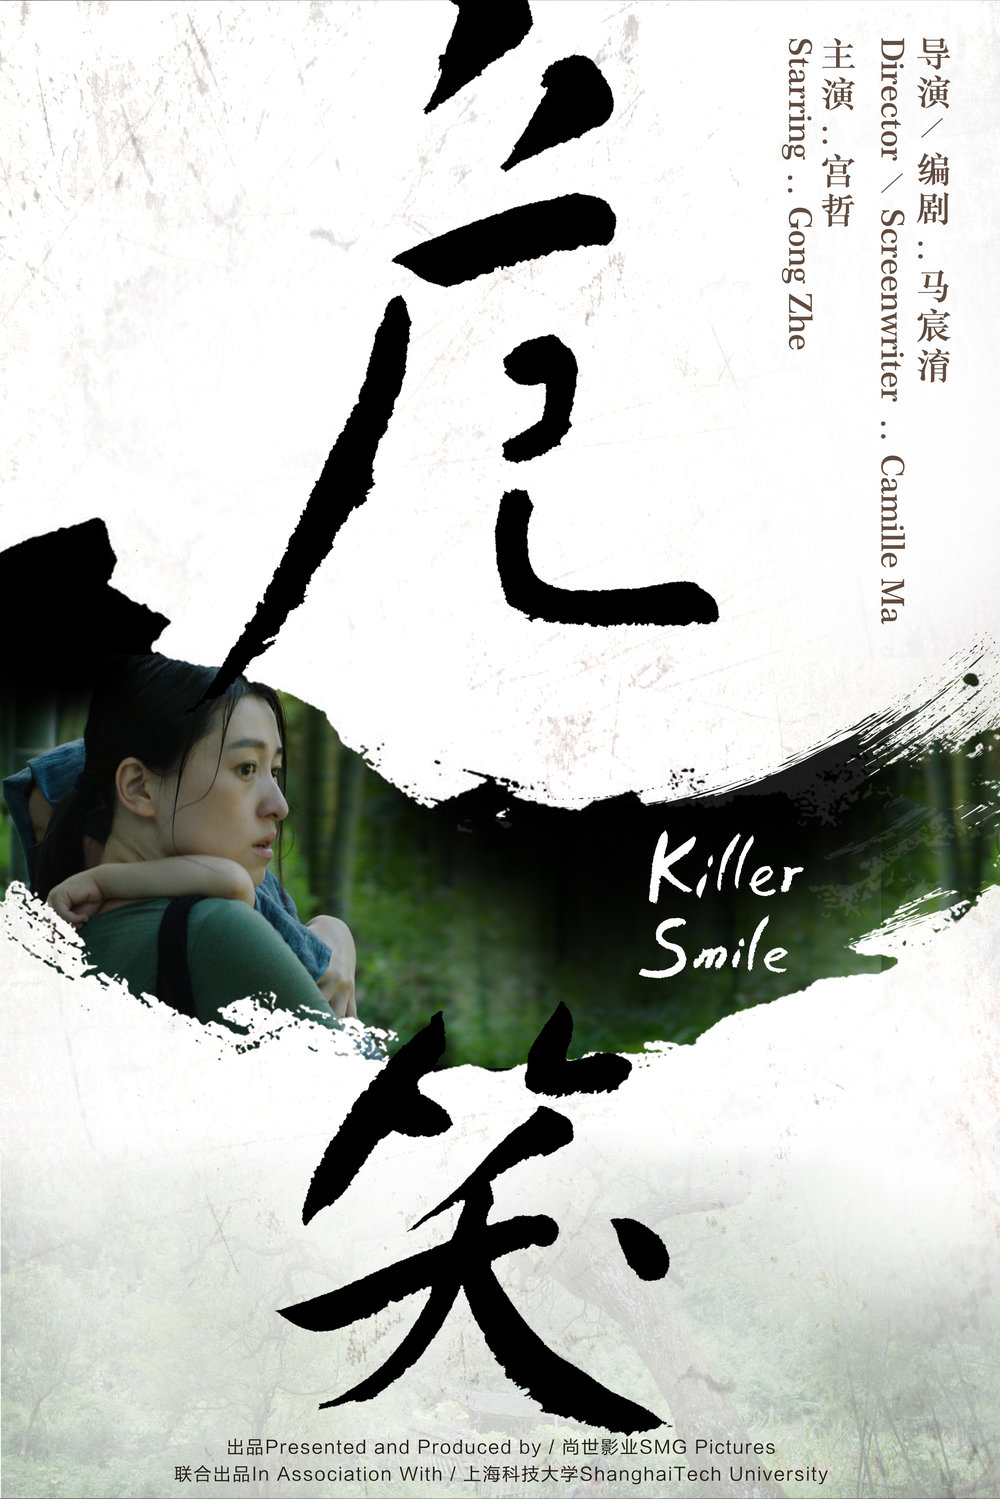 Killer Smile The smile of a baby is the sweetest thing in the world. But what if the smile can kill others? What if you are the mother of that baby? Alice, an urban single-mother sacrifices everything to protect her baby boy Marco... Read More